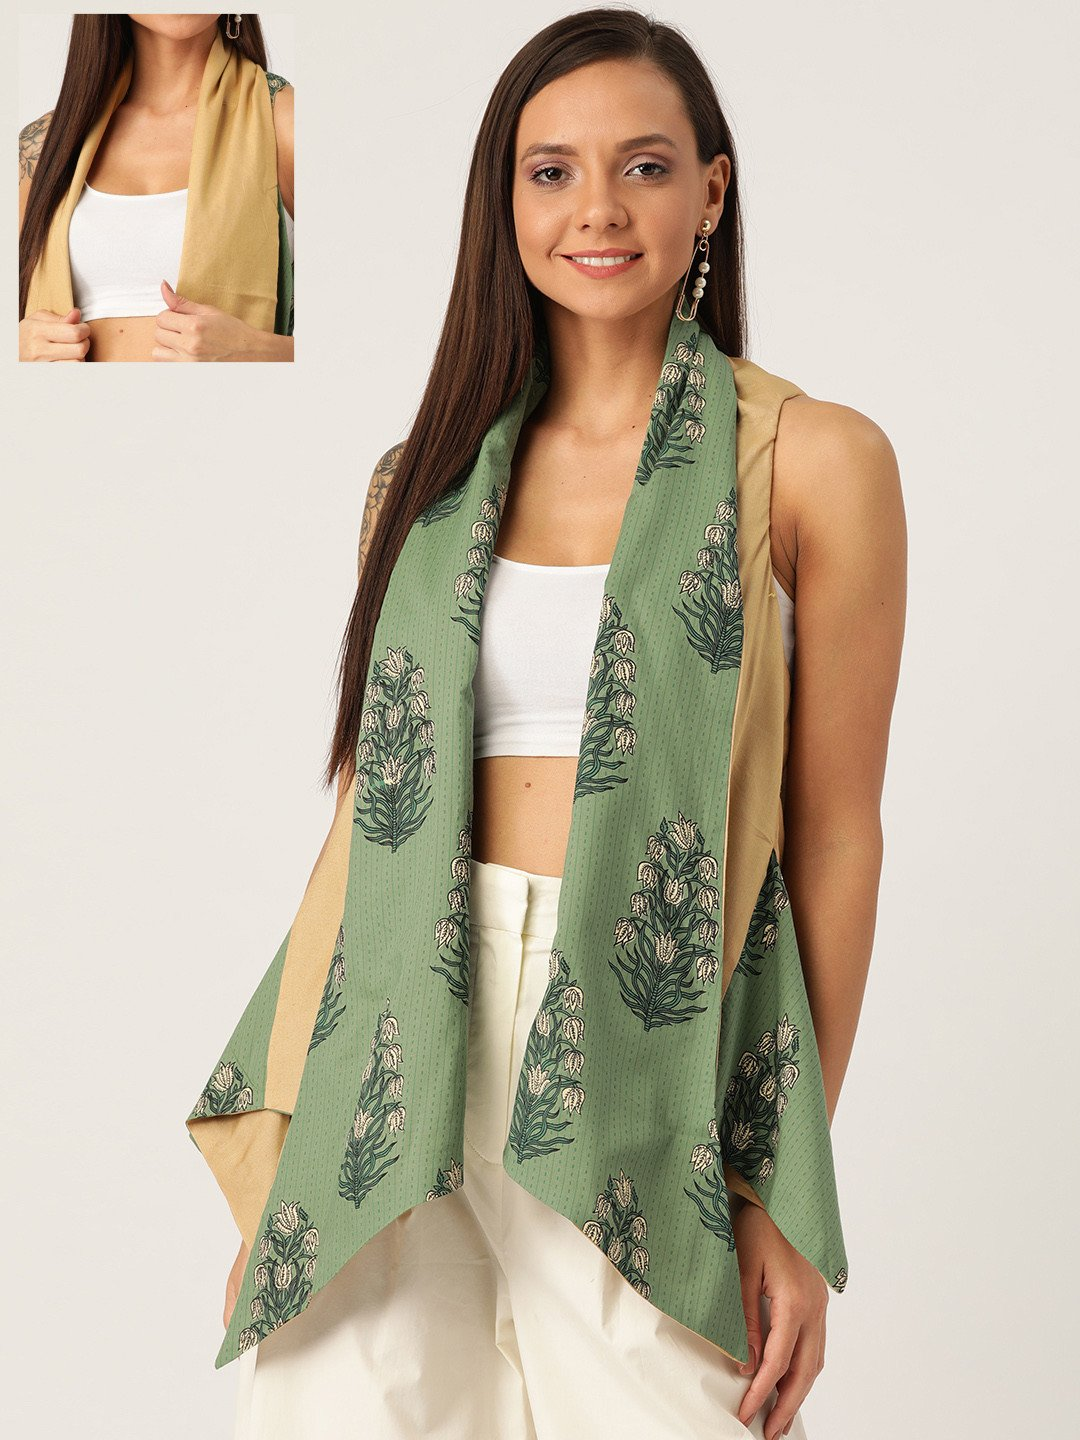 REVERSIBLE SHRUG IN GREEN & BEIGE FLORAL PRINT